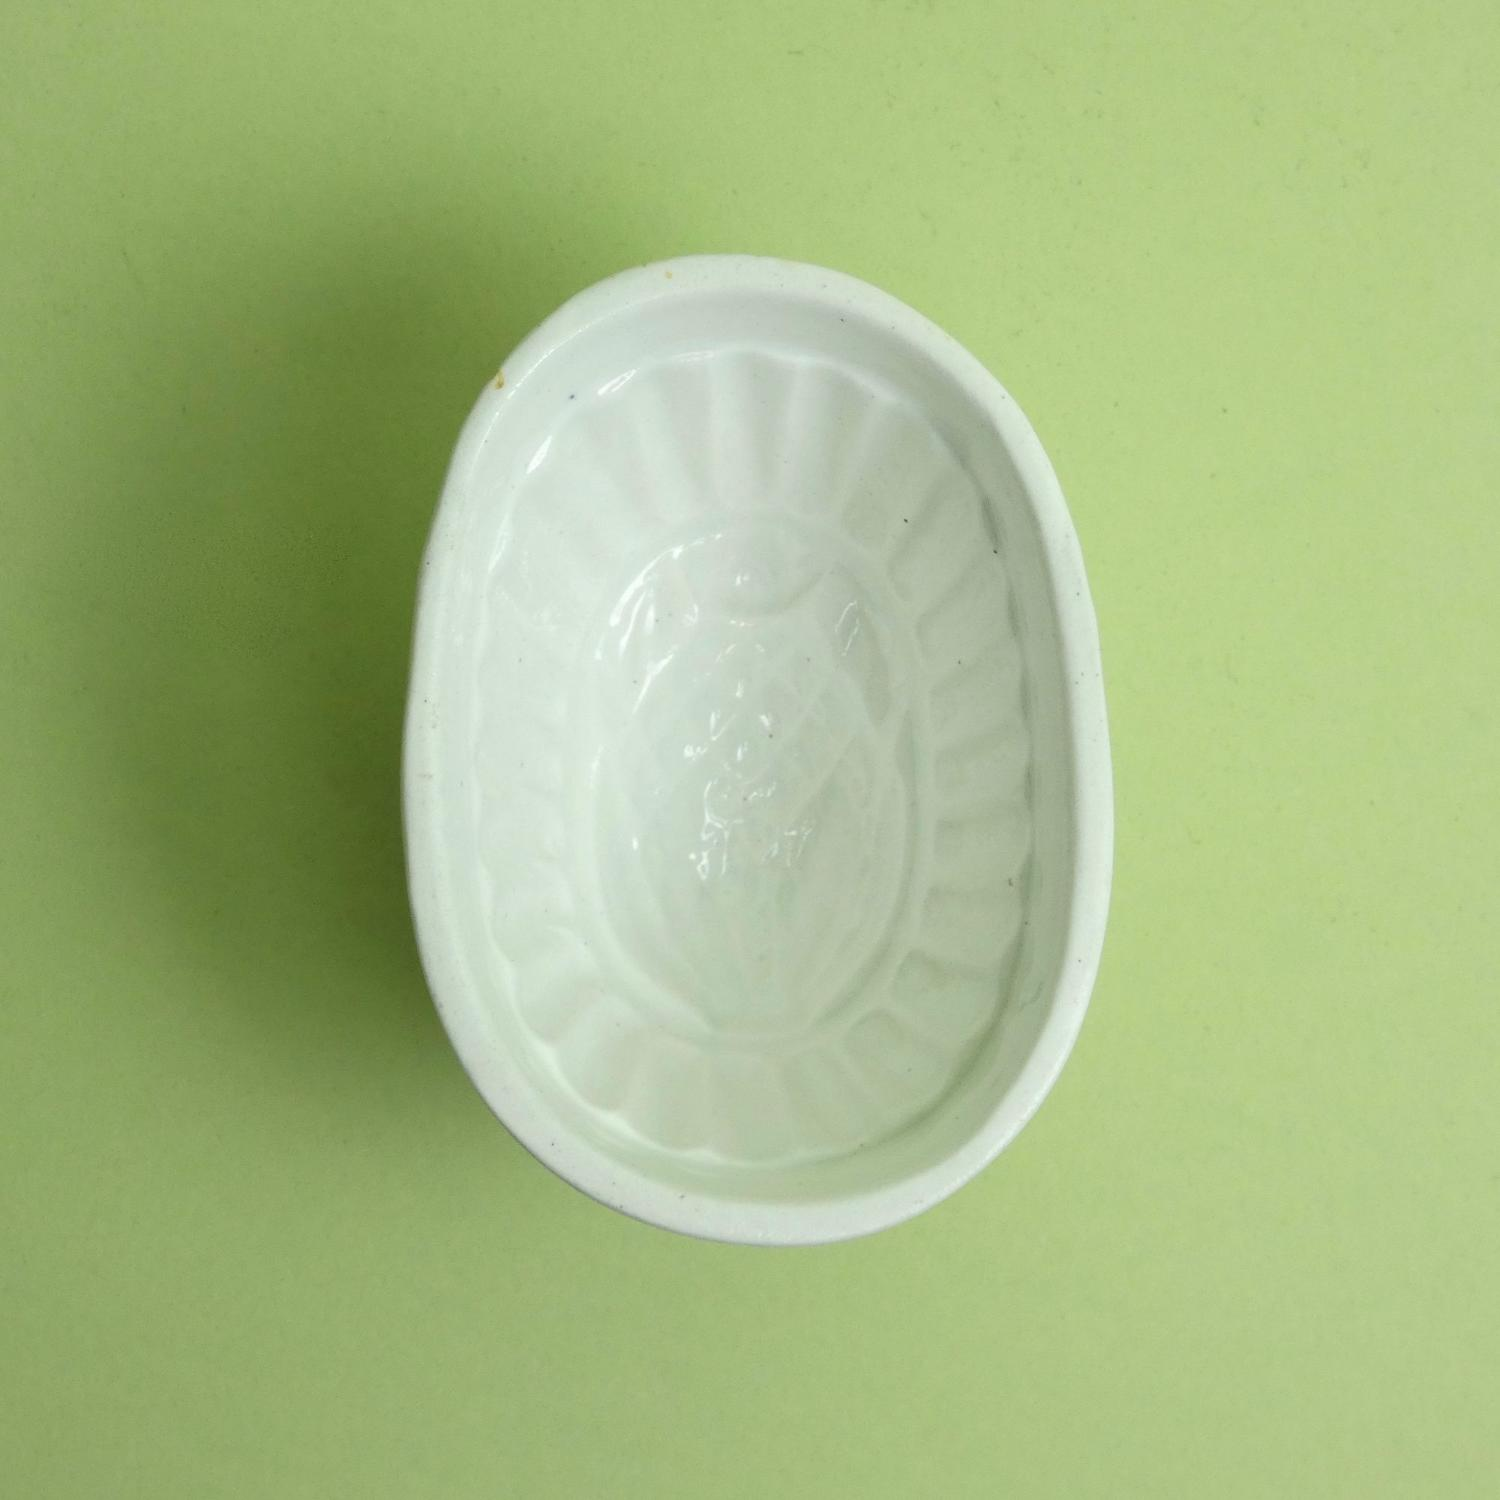 Small ironstone mould